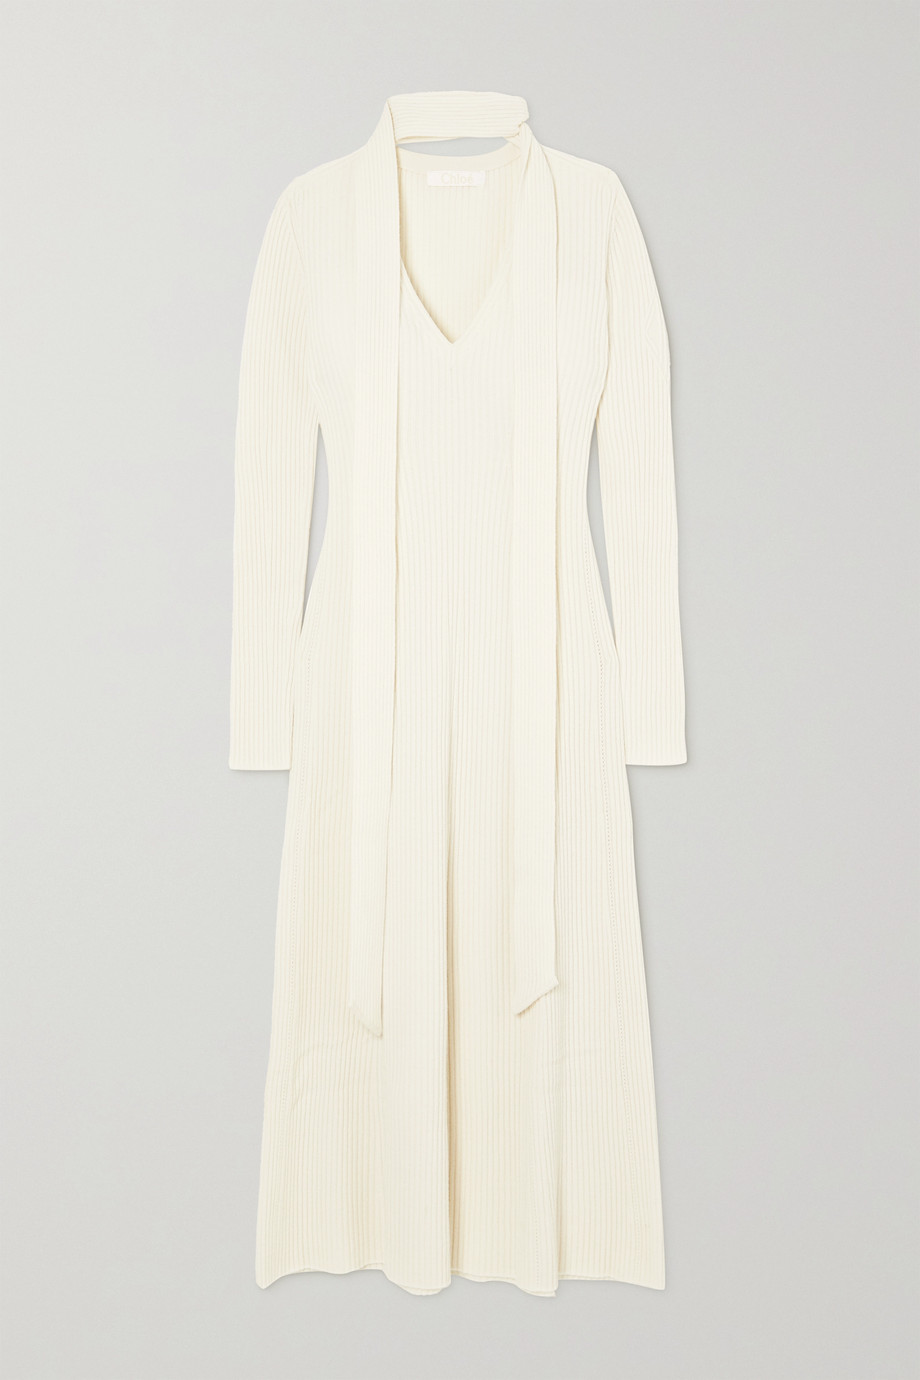 Chloé Tie-neck ribbed wool and silk-blend midi dress